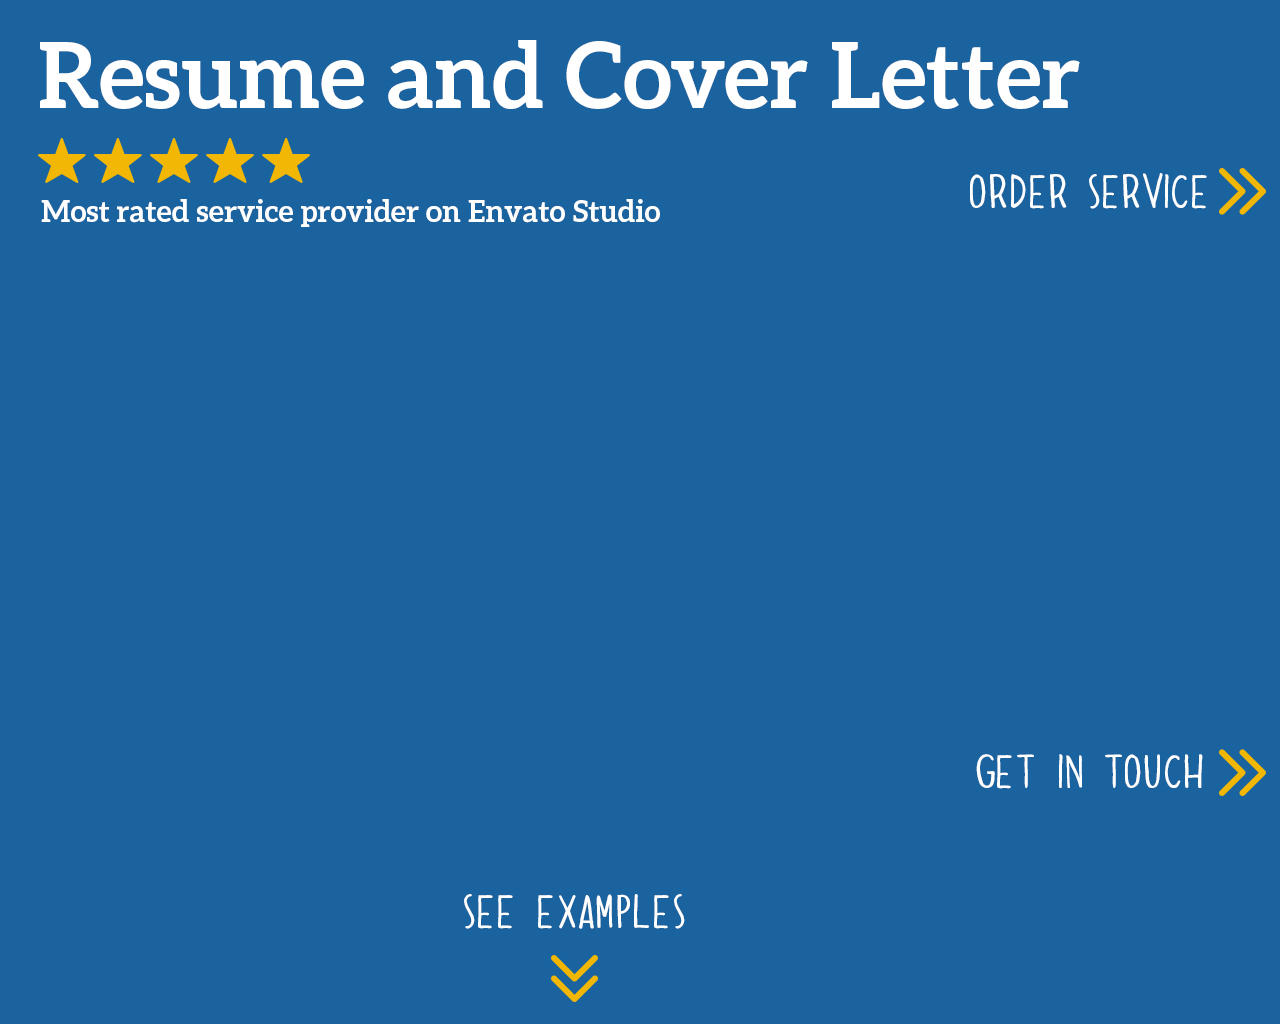 Professional Resume and Cover Letter with QR Code by zlaws - 75580